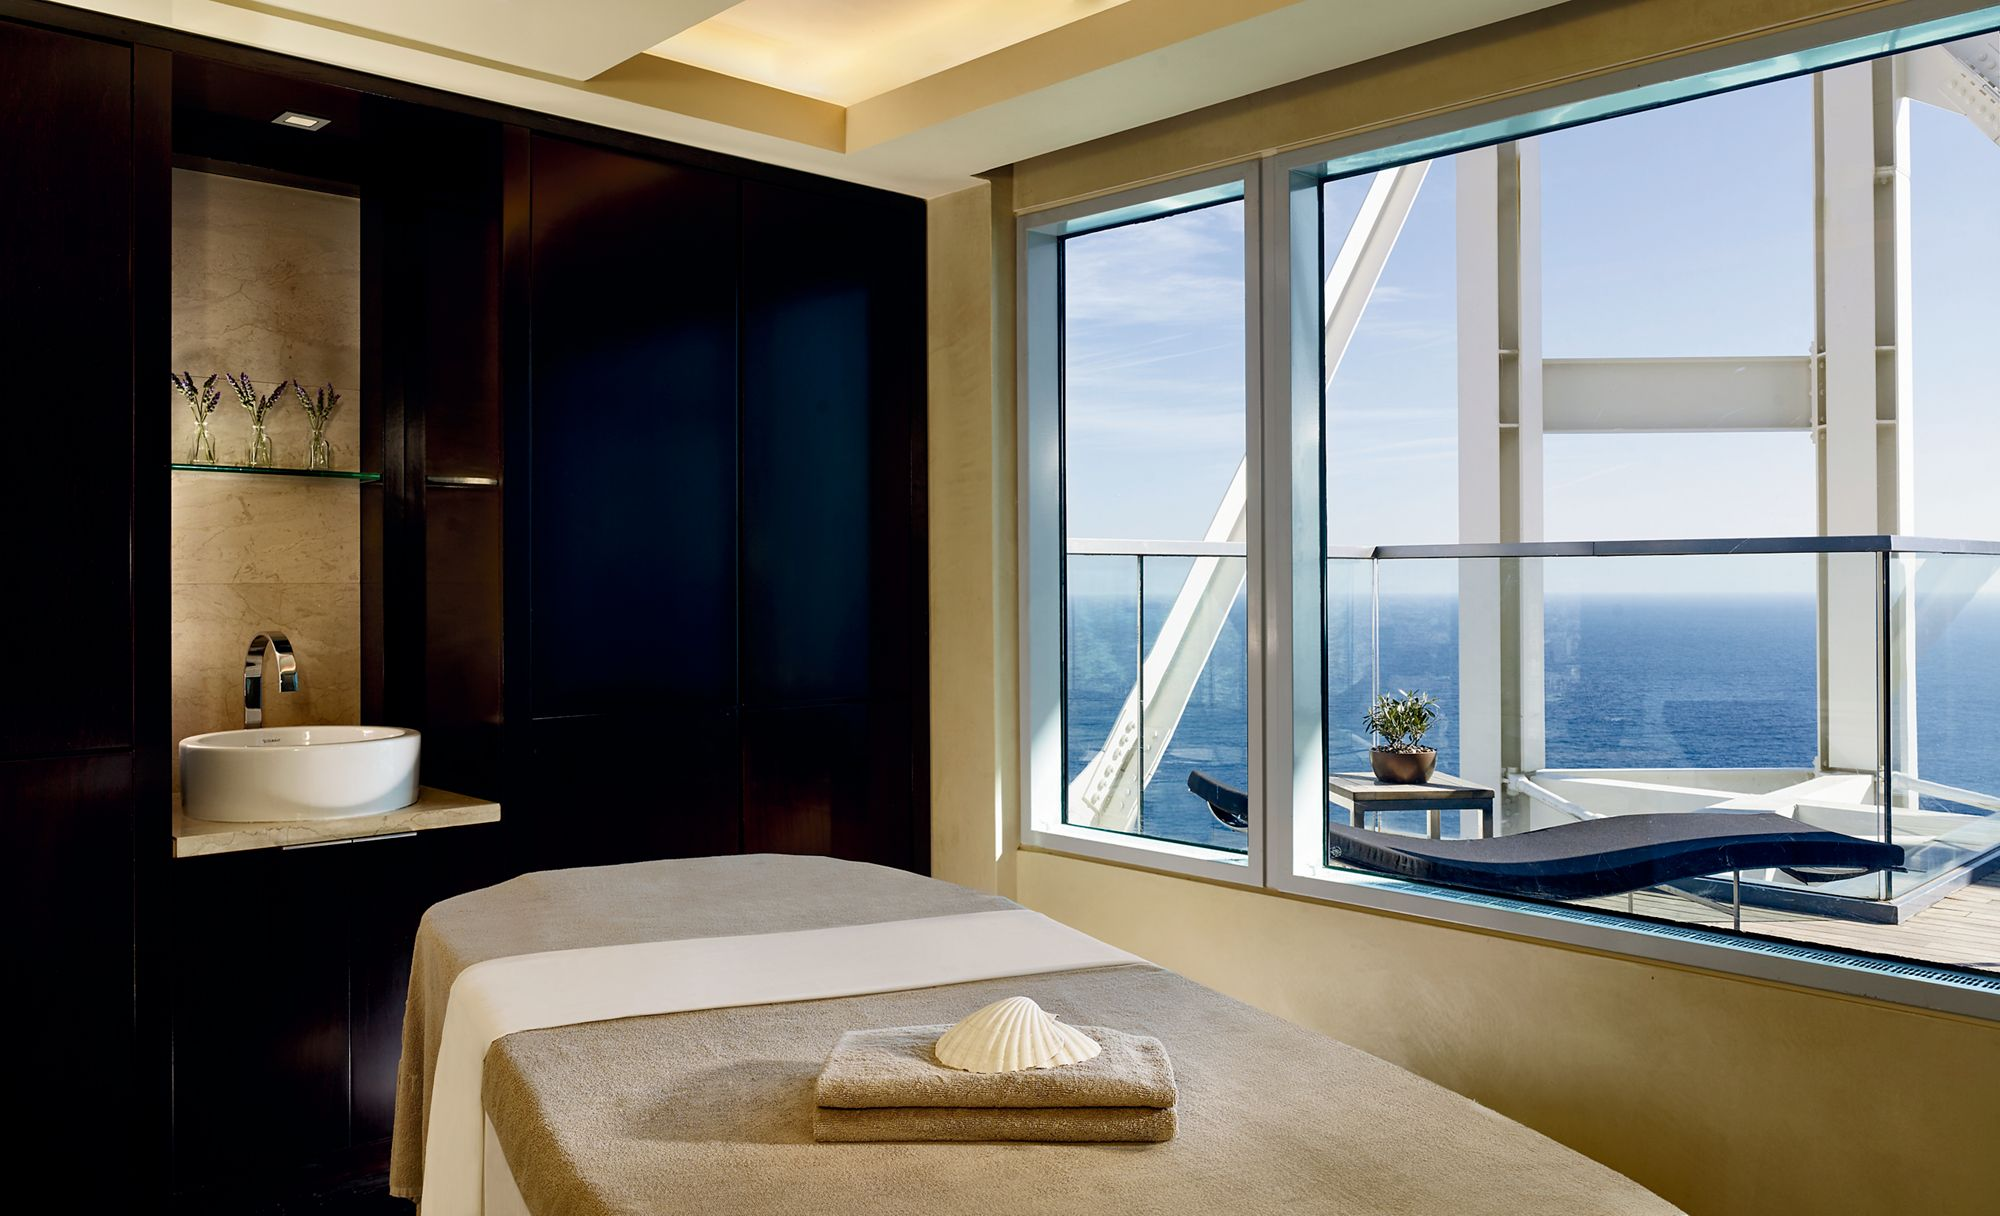 A room with a massage table, bowl sink and large windows overlooking a furnished terrace and the sea